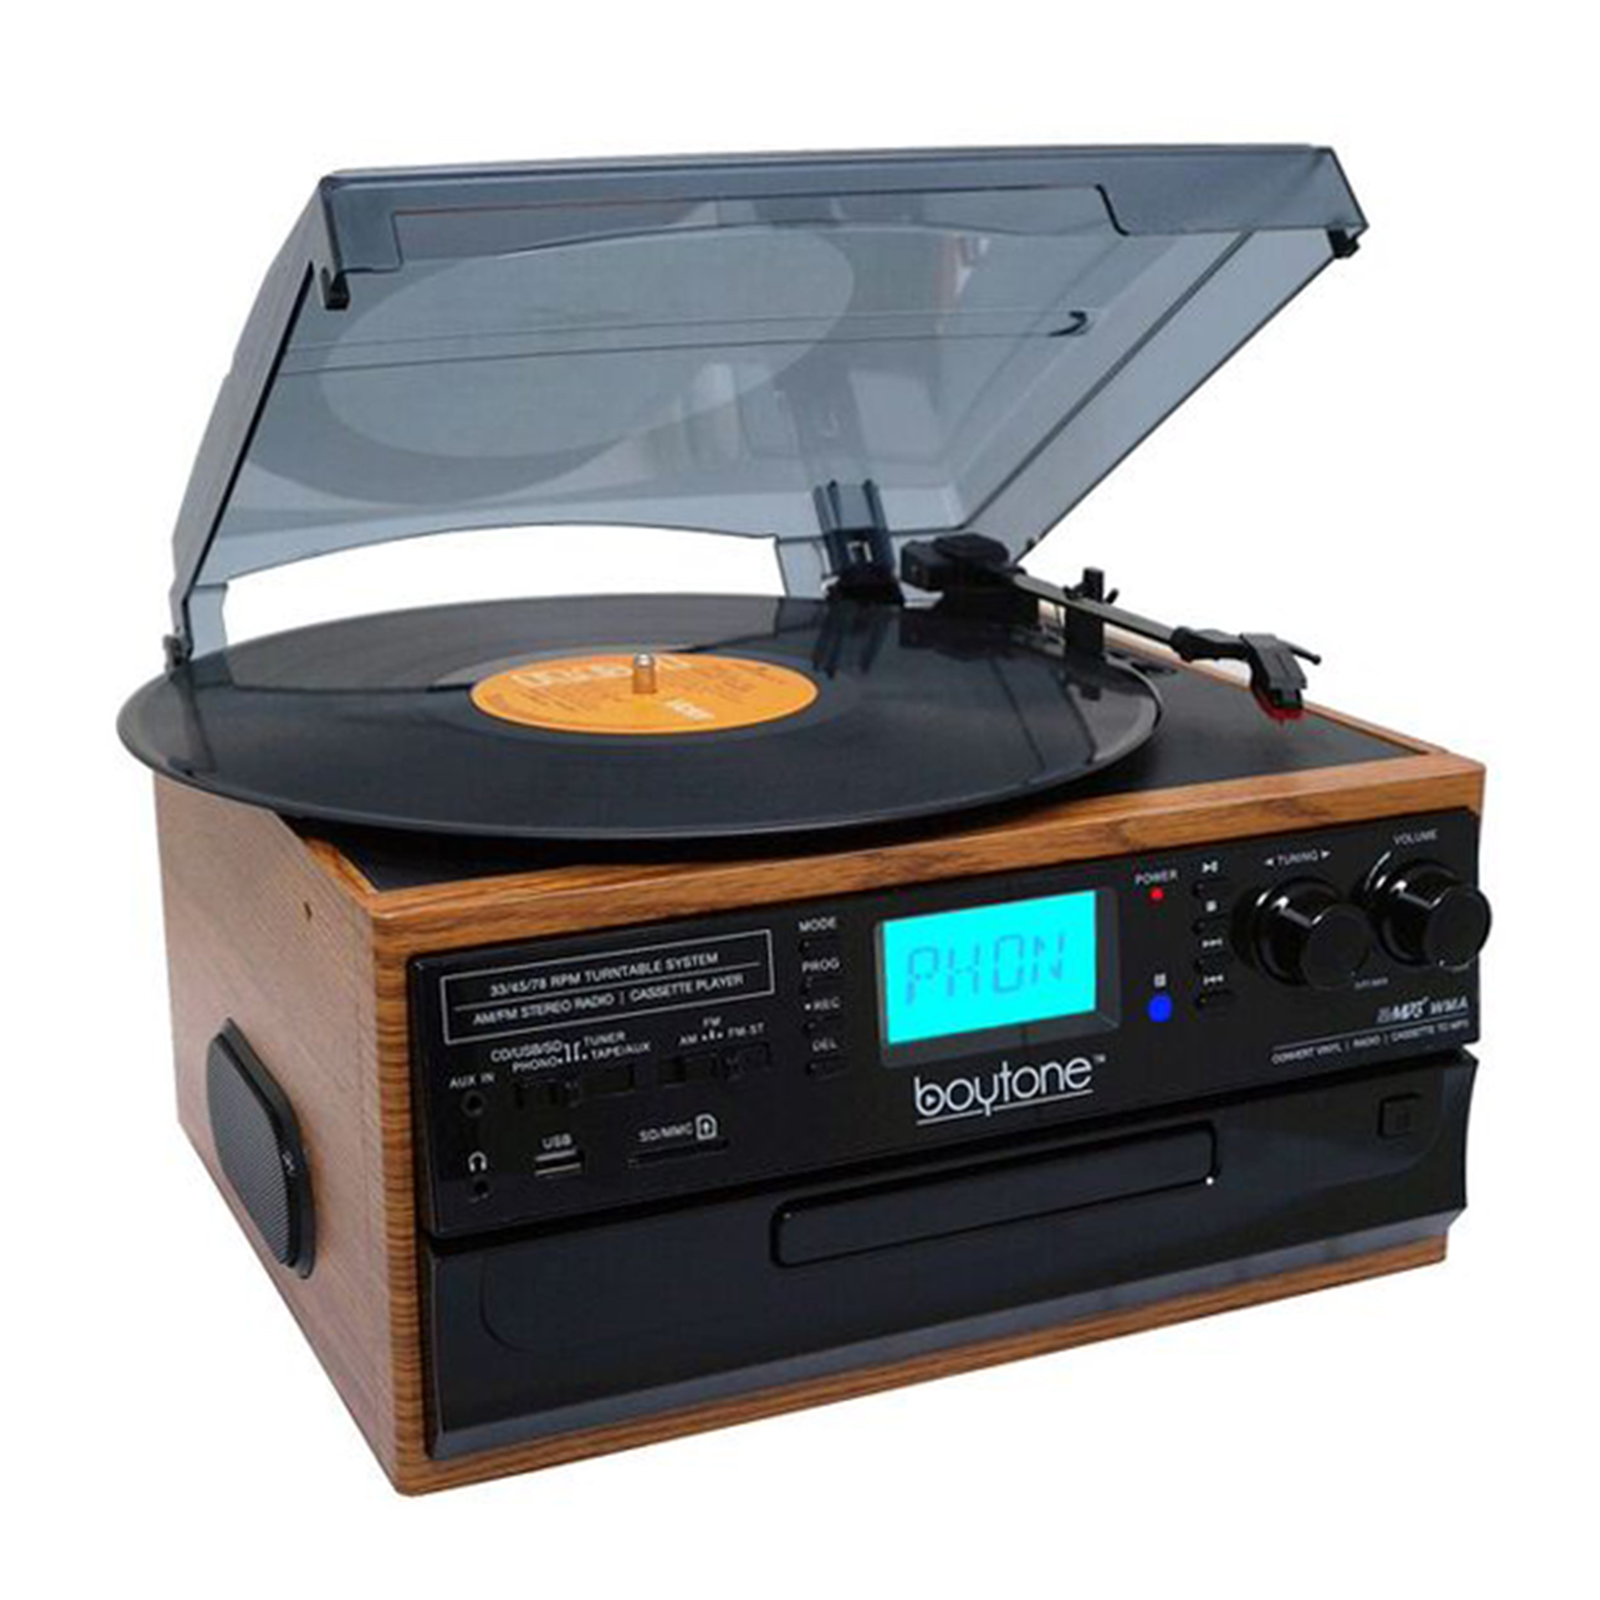 Boytone BT IN & OUT Classic Style Record Player Turntable with AM/FM Radio, Cassette Player, CD Player, 2 Separate Stereo Speakers, Record Vinyl, Radio, Cassette to MP3, SD Slot, USB, AUX